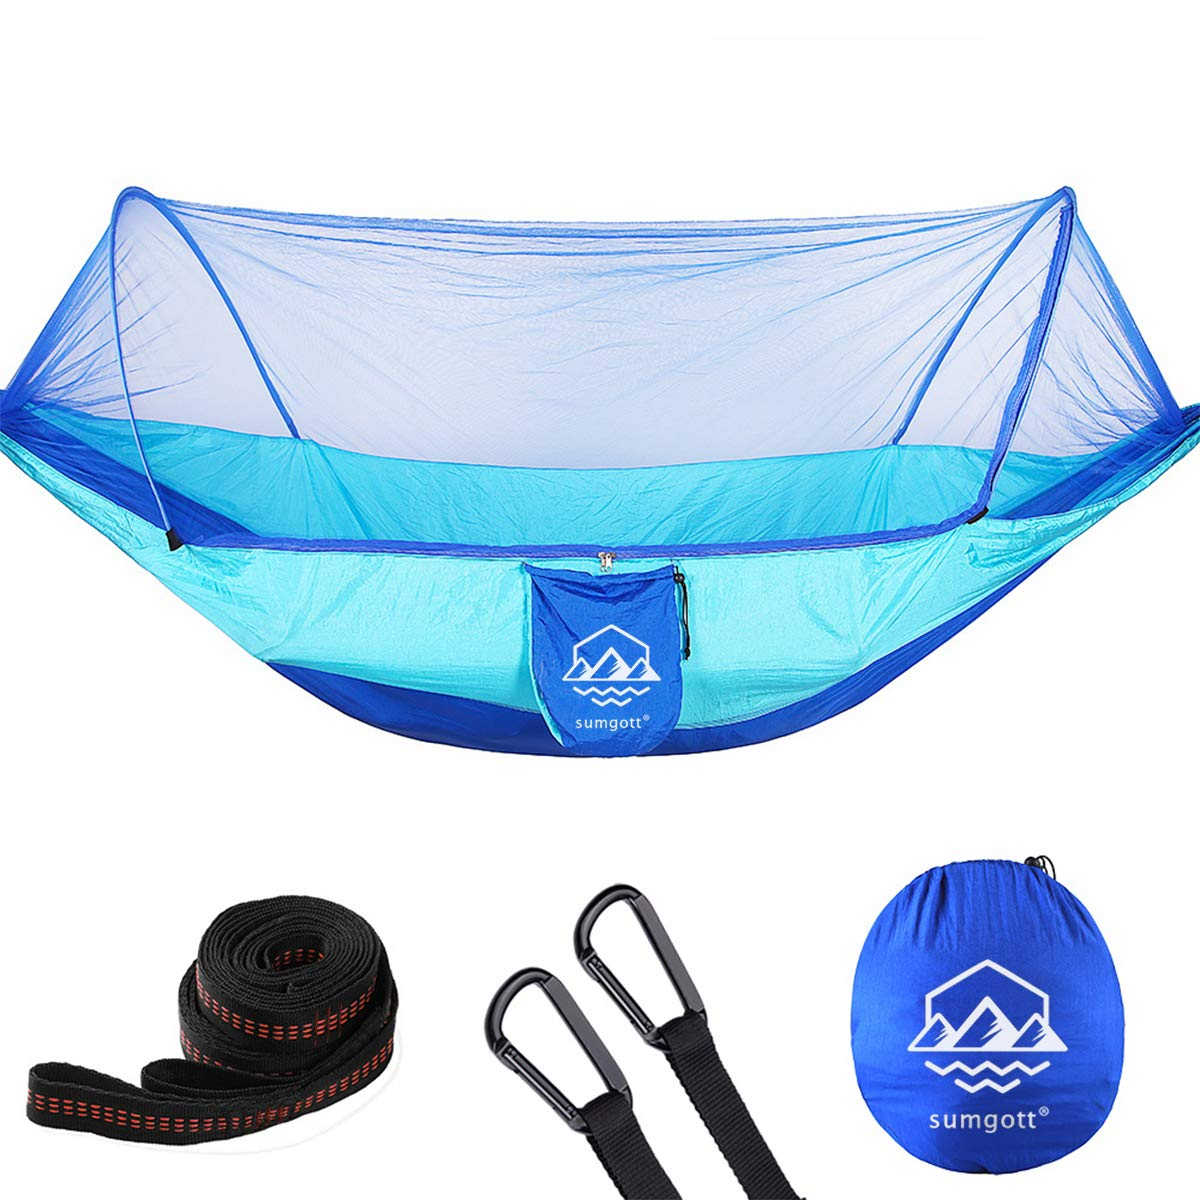 SUMGOTT Camping Hammock with Mosquito Net 300kg Load Capacity (290 x 140 cm) Breathable Quick-drying Parachute Nylon, 2 Person Hammock for Outdoor Hiking Backpacking Traveling